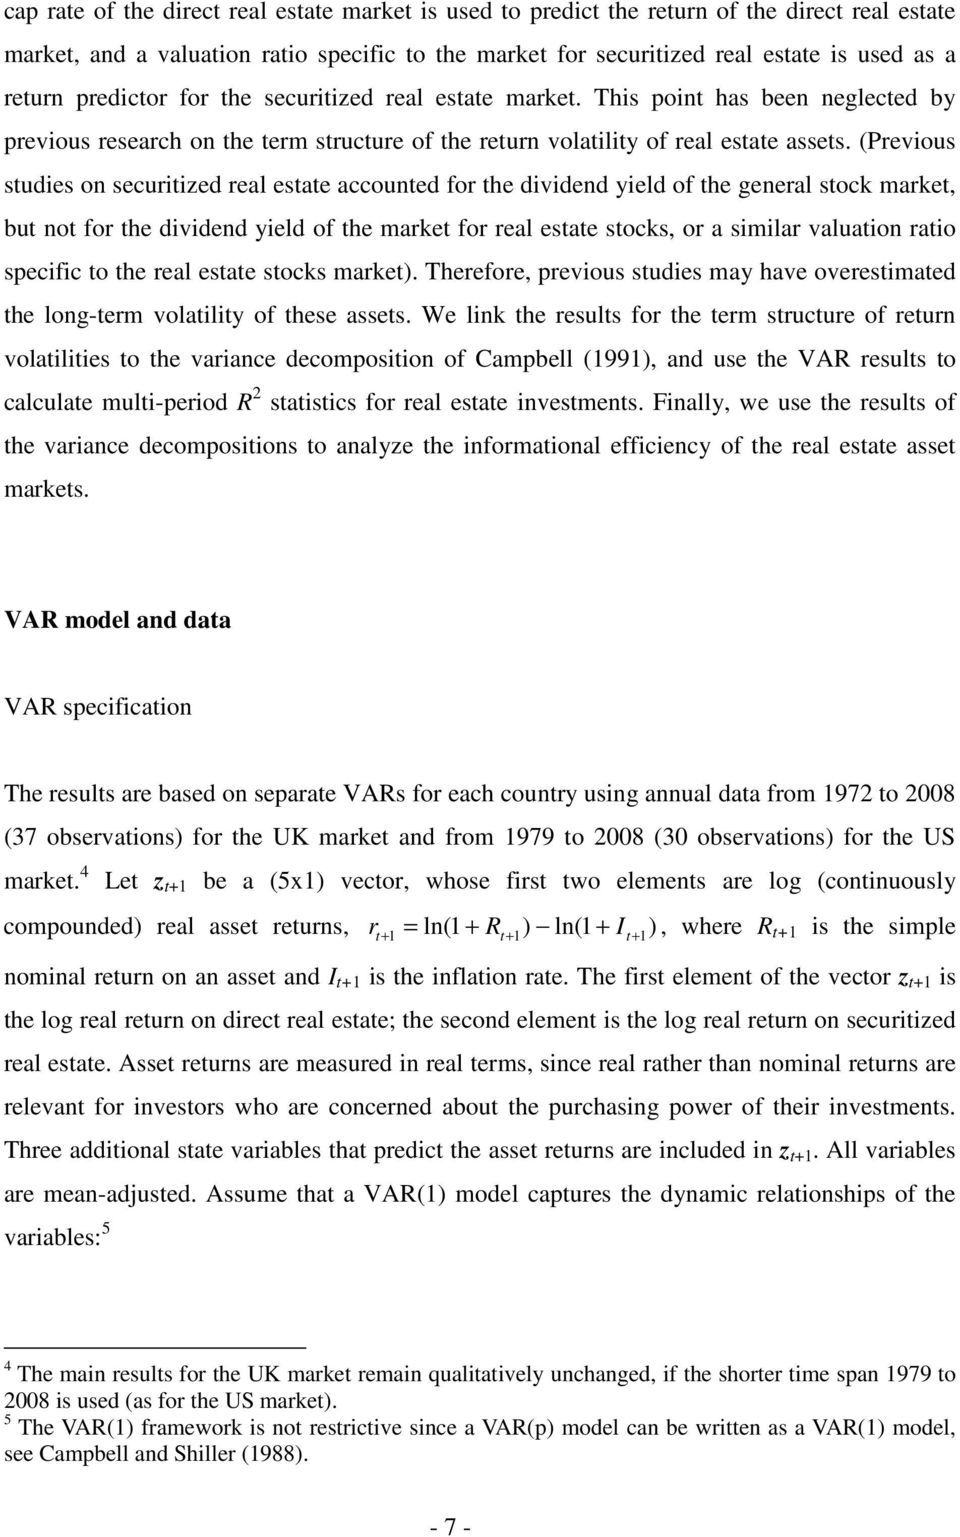 (Previous studies on securitized real estate accounted for the dividend yield of the general stock market, but not for the dividend yield of the market for real estate stocks, or a similar valuation